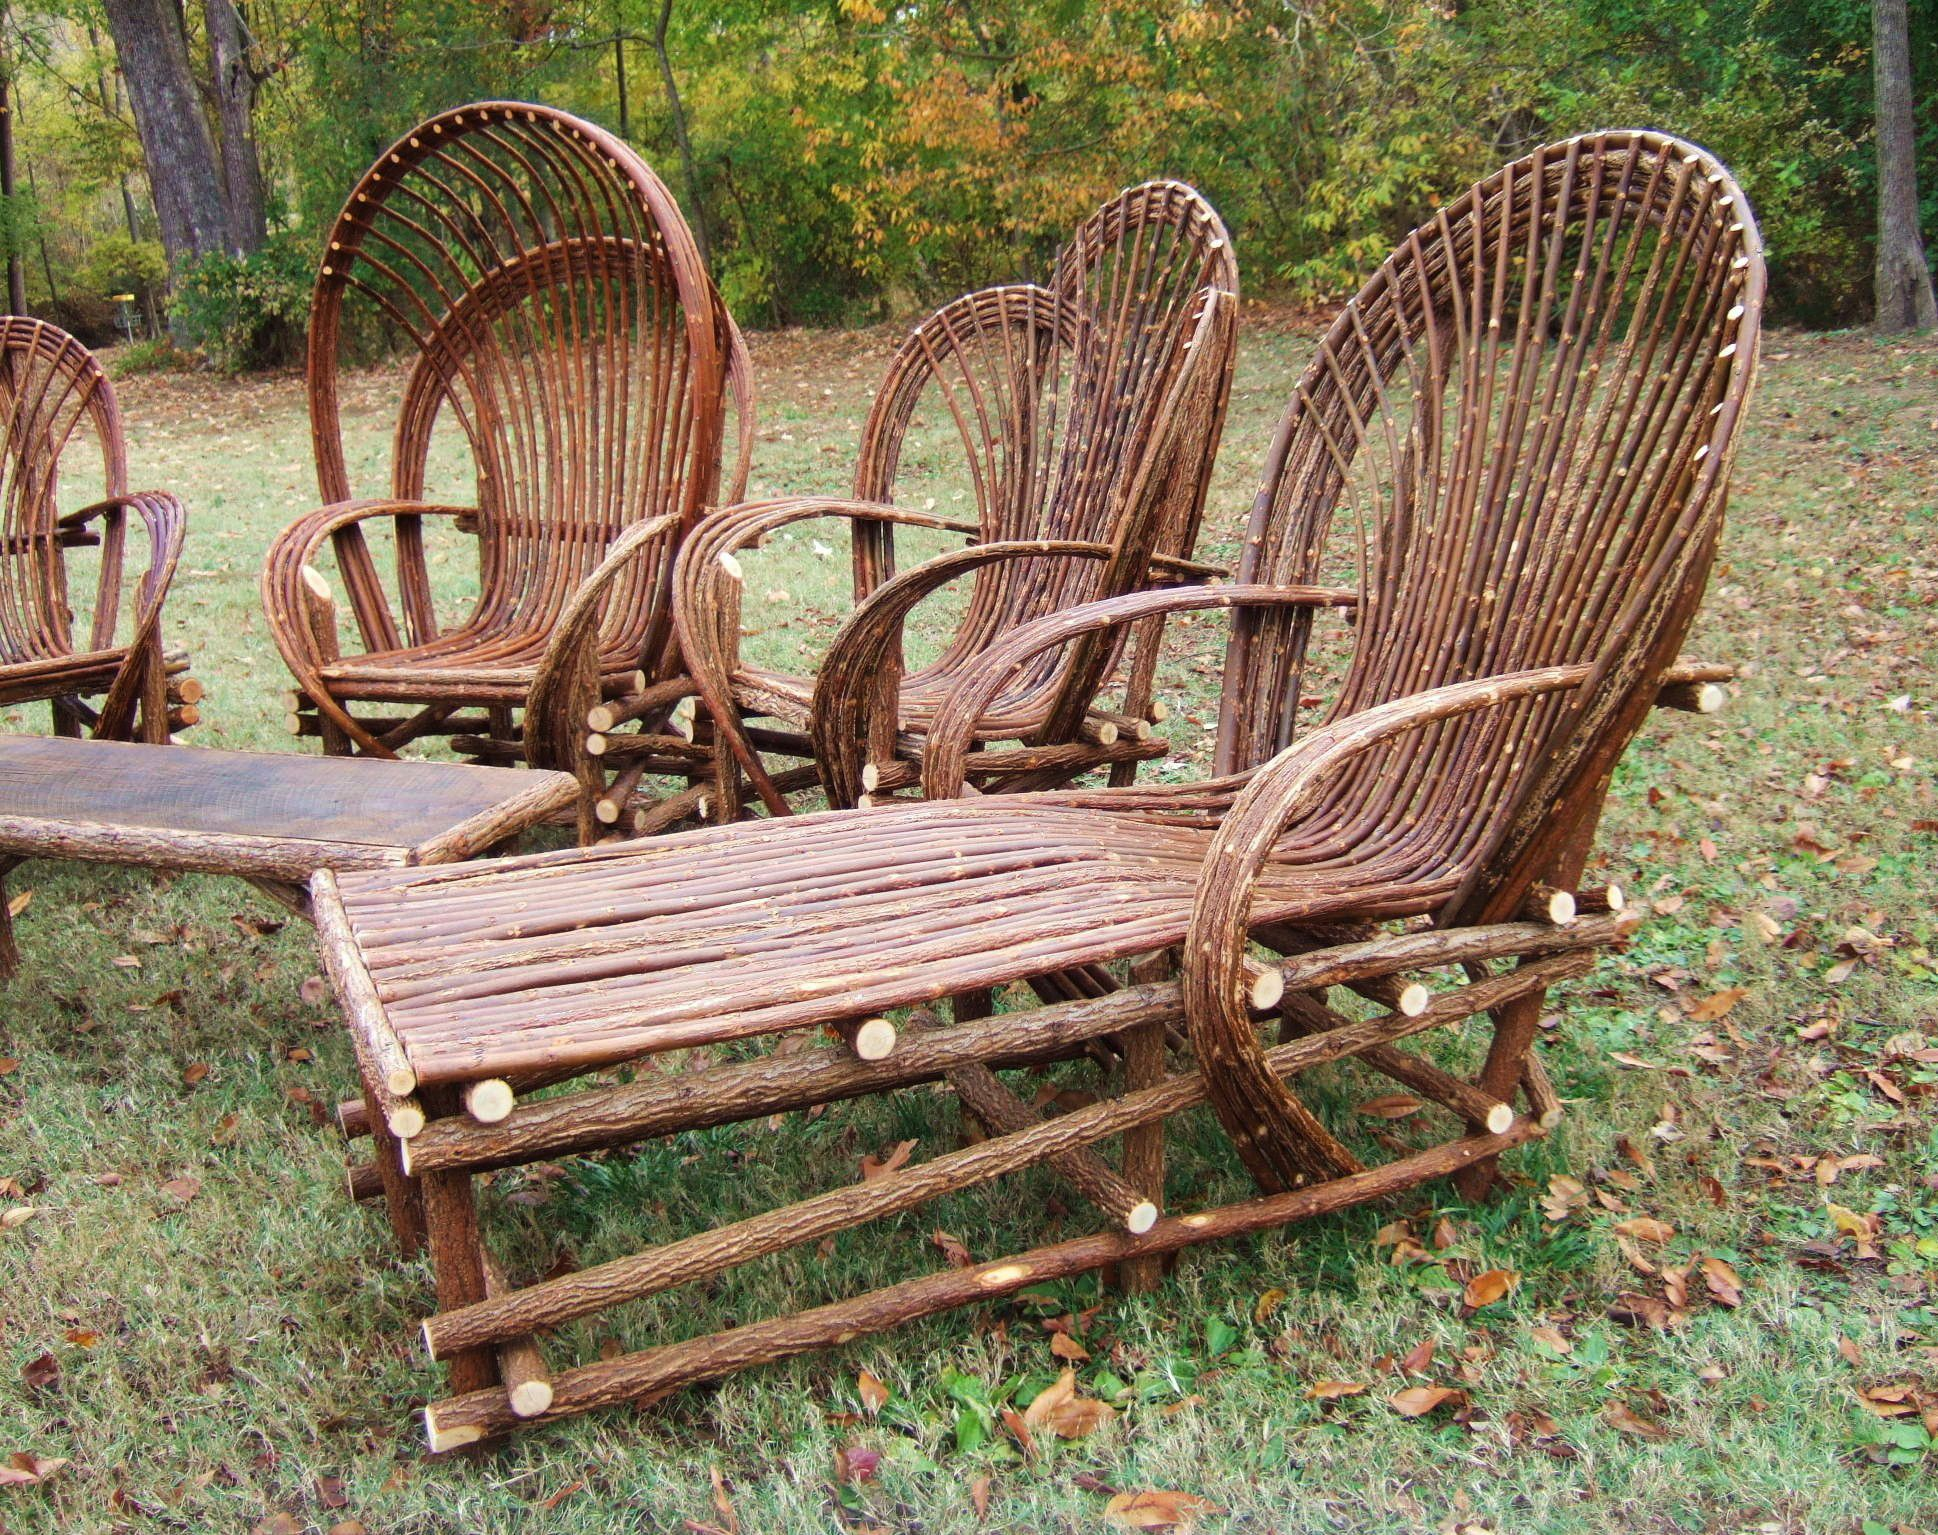 Chairs And Chaise Loungers Made With Willow Trees DIY - Woodland patio furniture